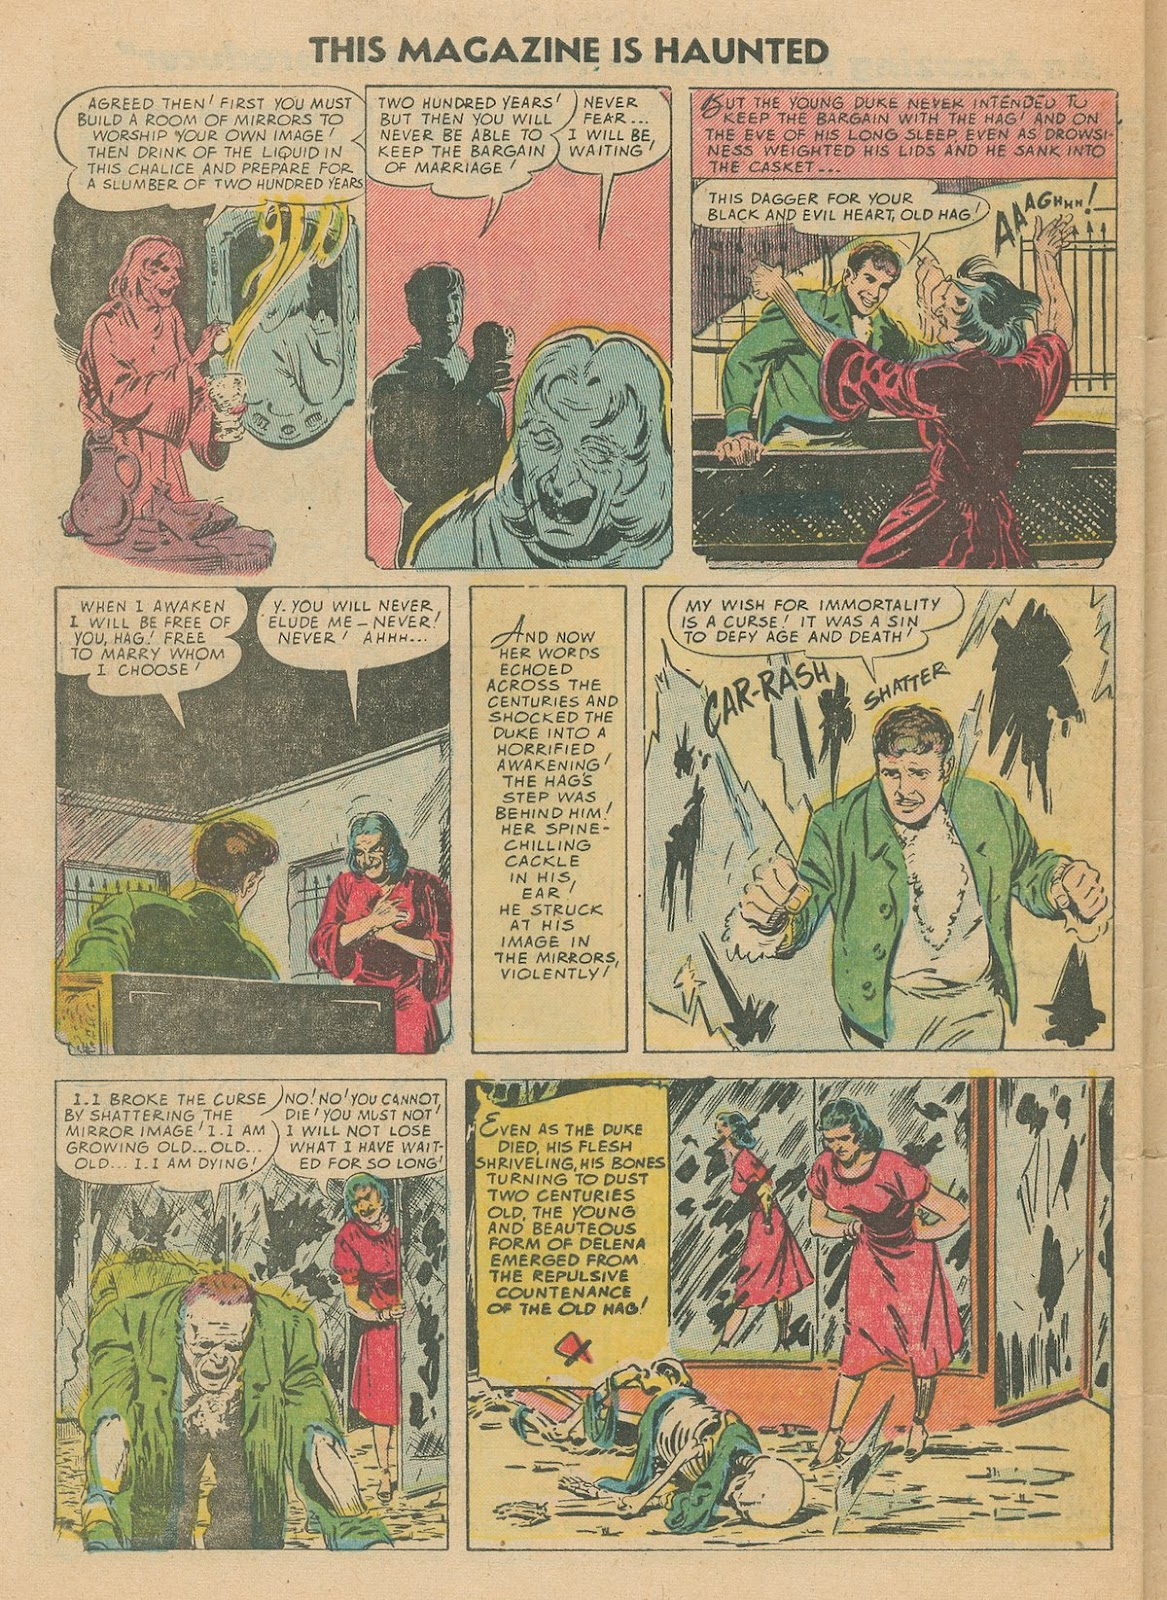 Read online This Magazine Is Haunted comic -  Issue #21 - 32